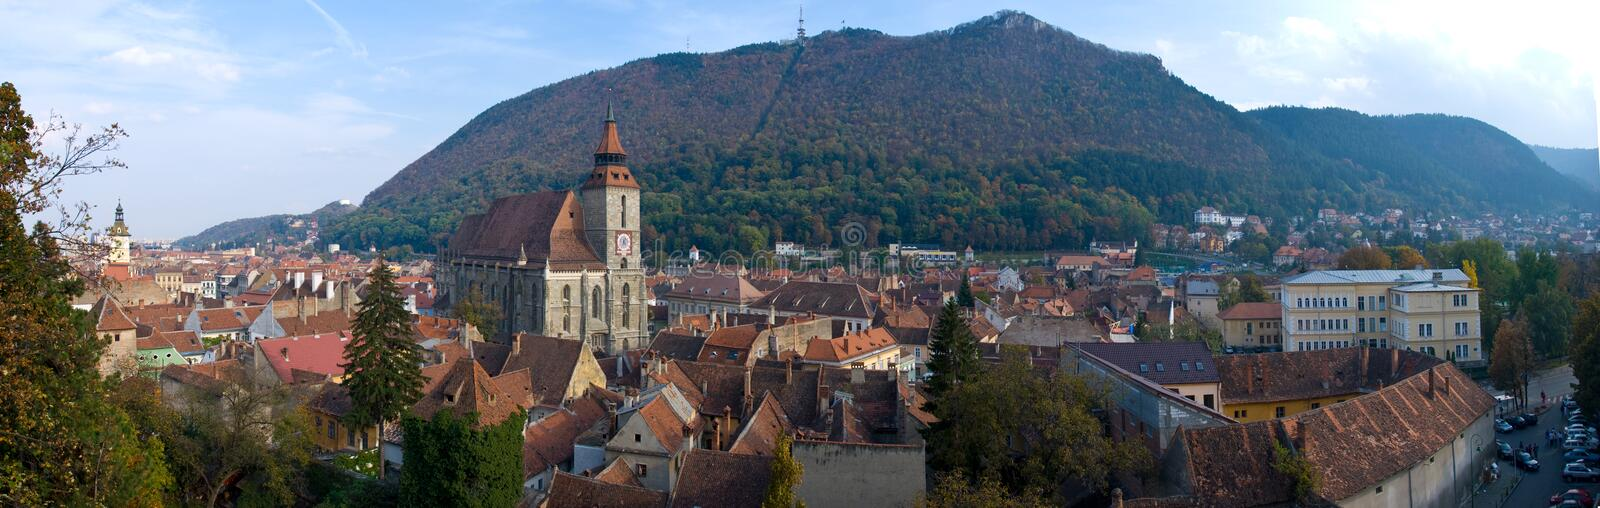 Panorama de Brasov fotos de stock royalty free